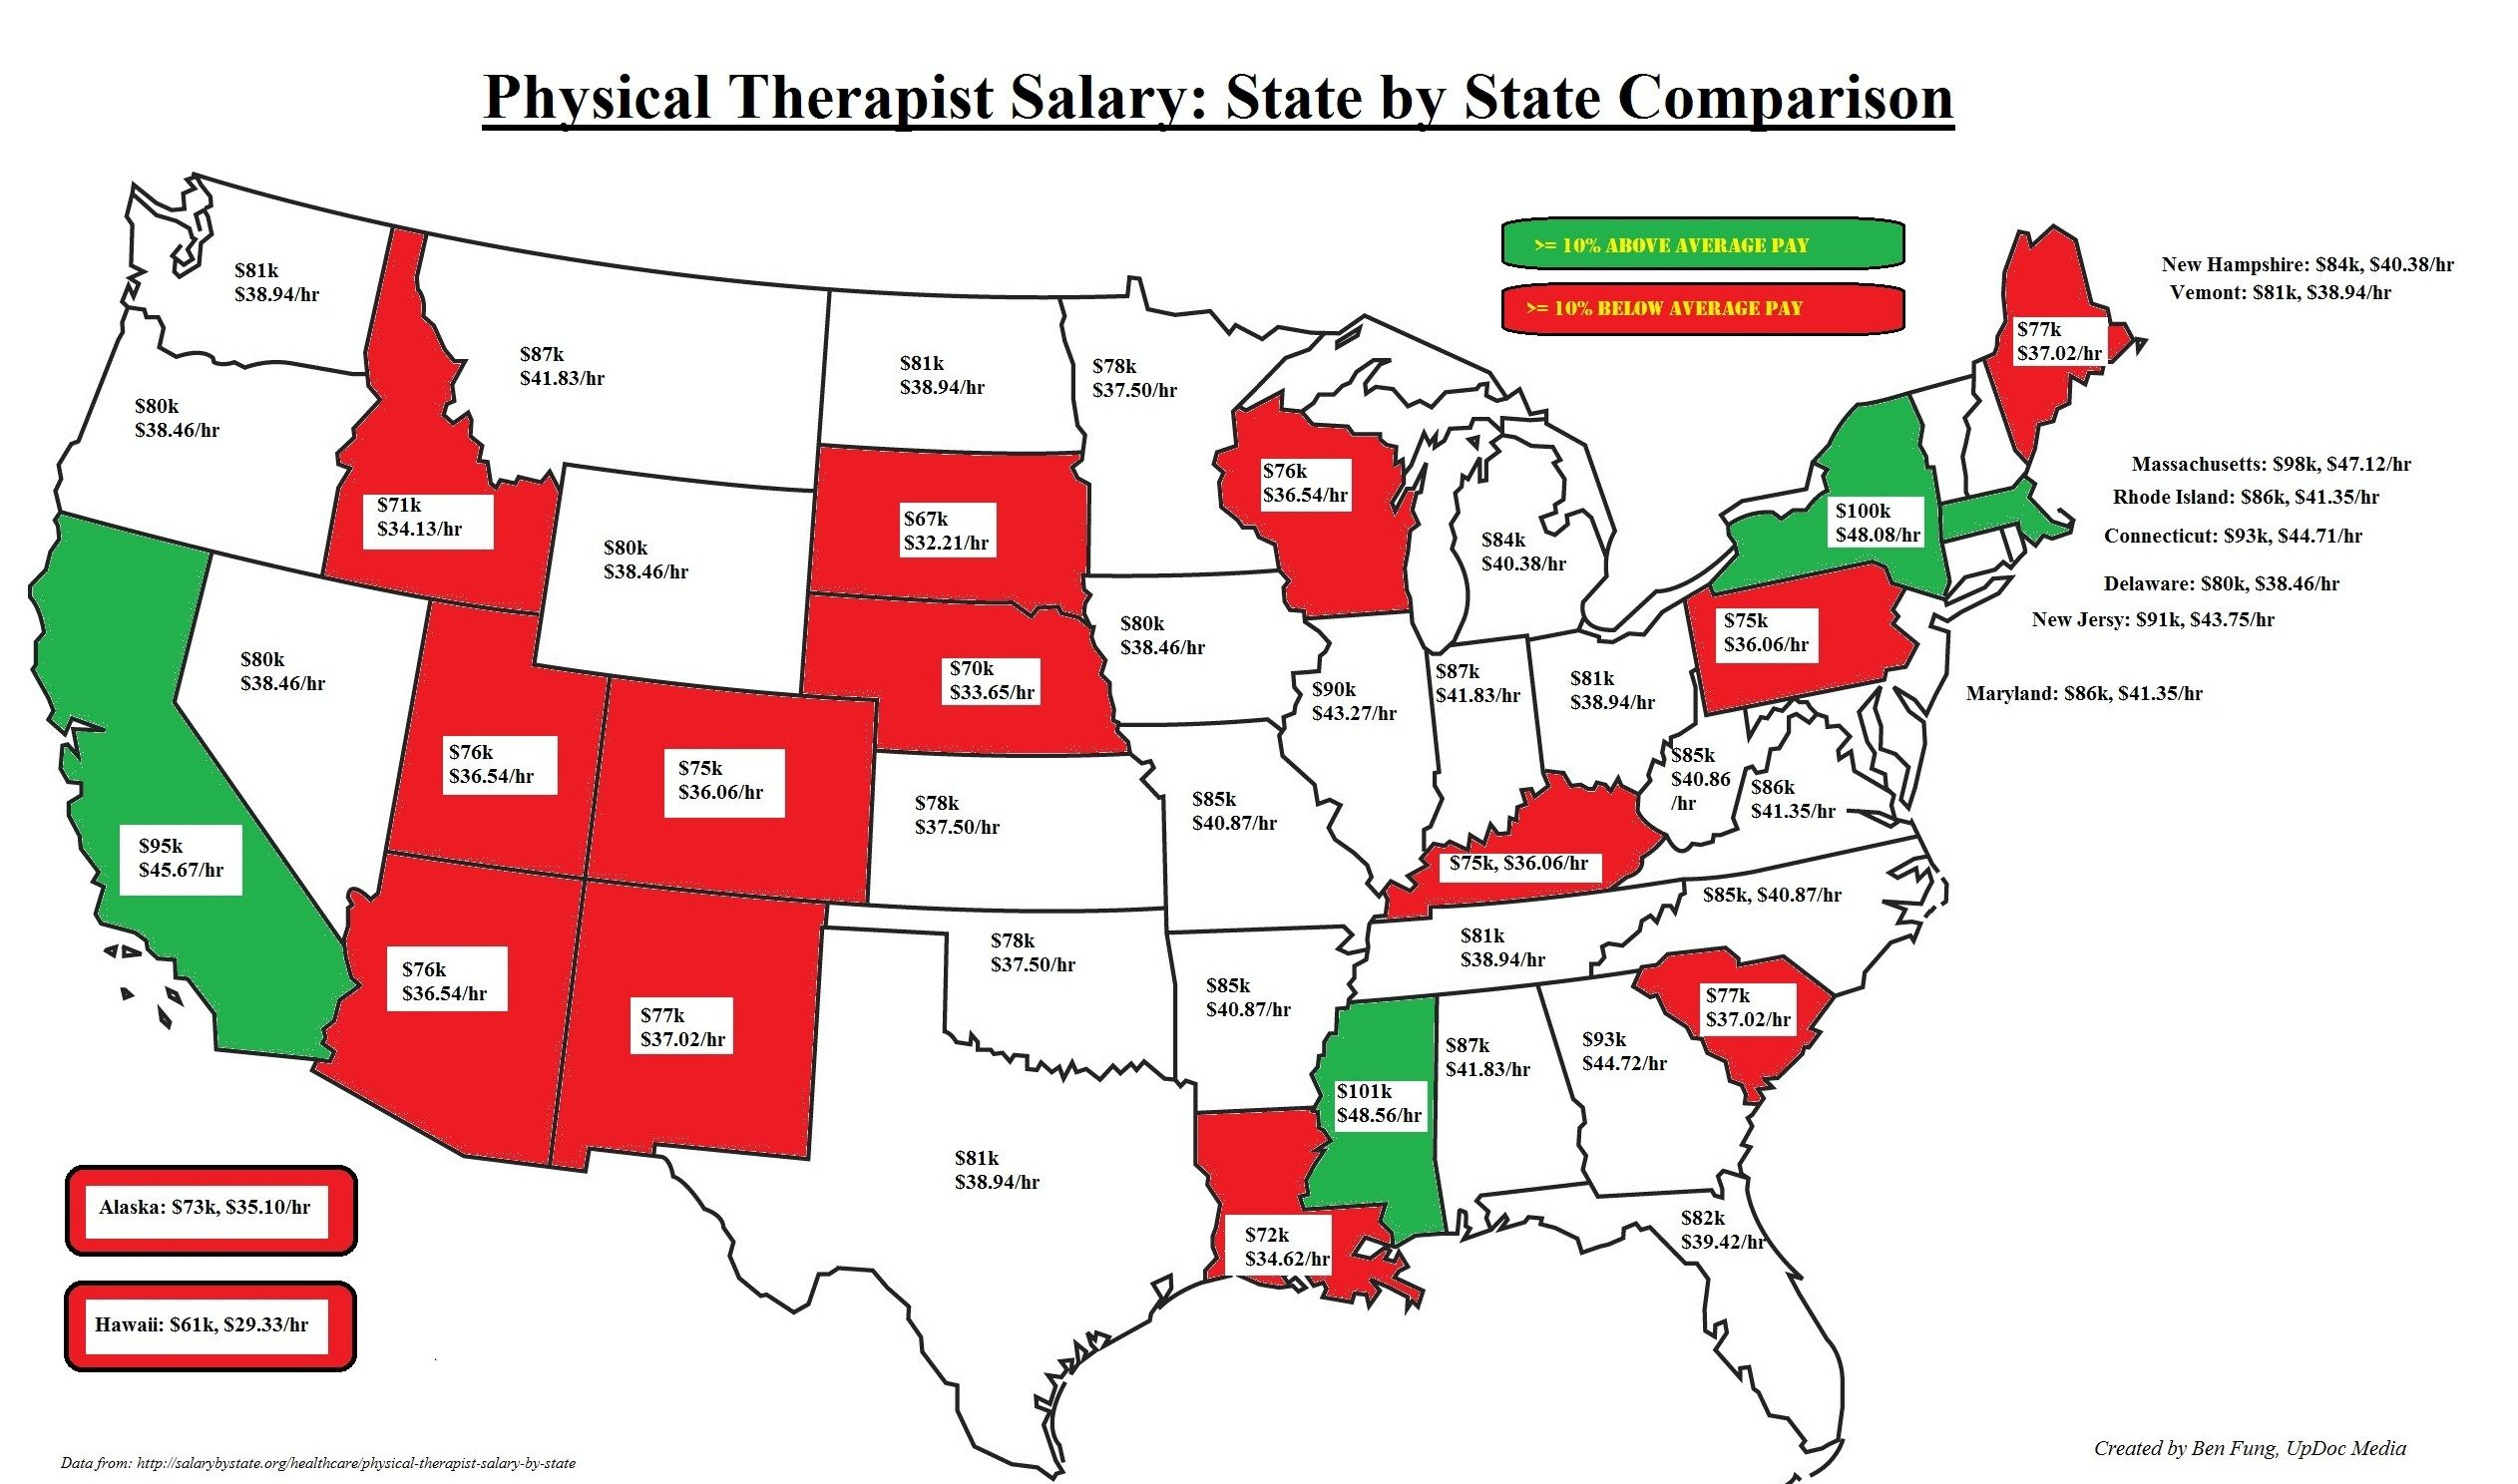 Careers in pediatric physical therapy - The 2015 Physical Therapy Job Market Outlook Version Updoc Media